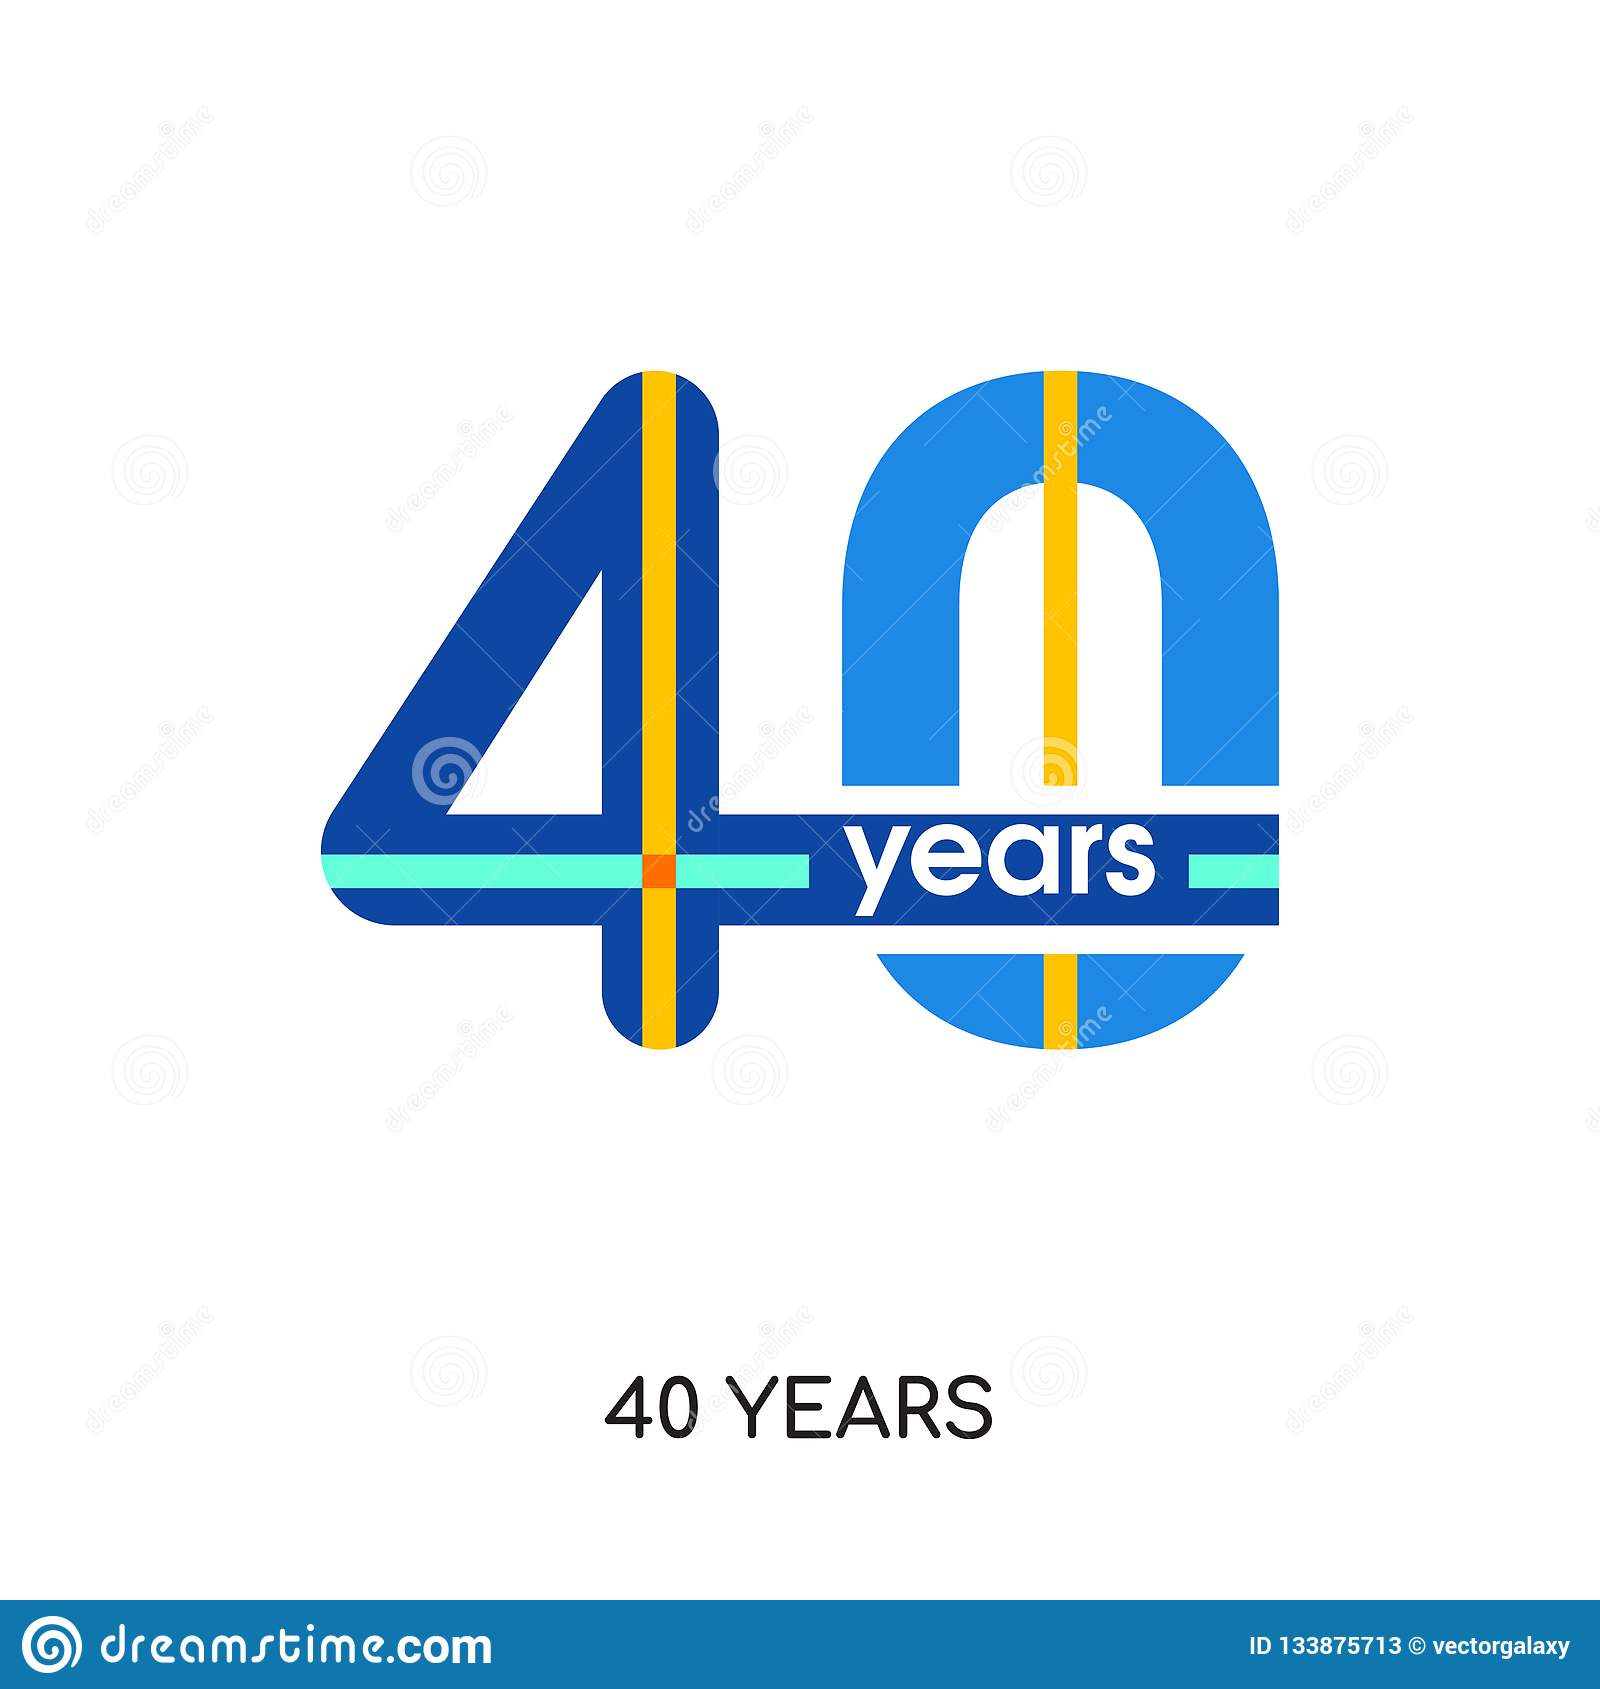 40 years logo isolated on white background for your web, mobile